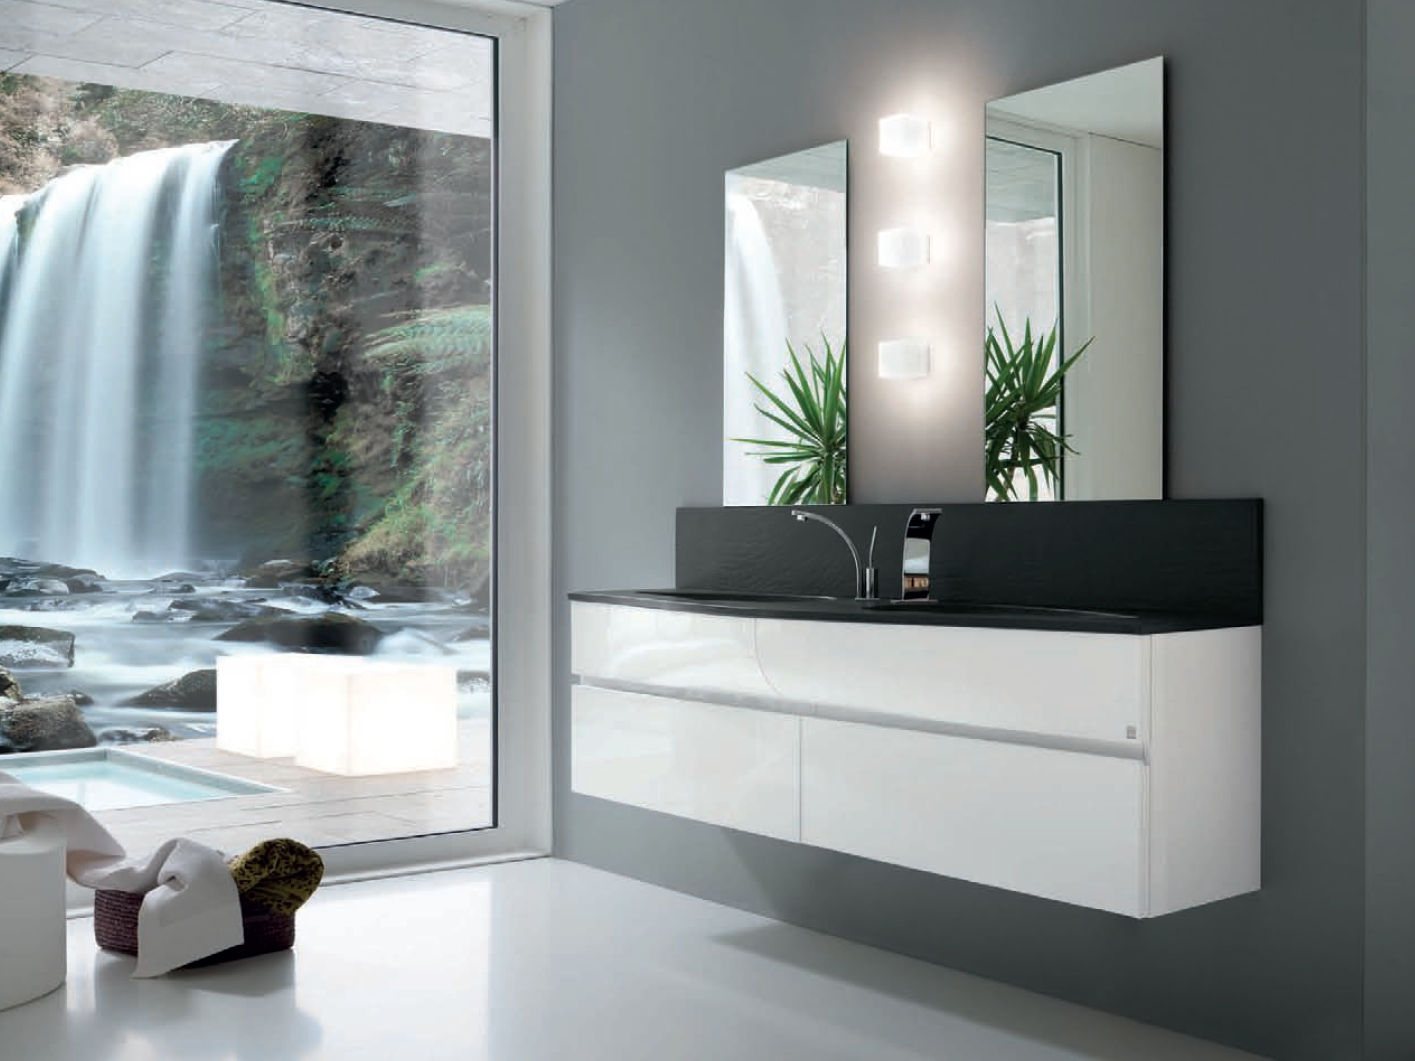 Meuble sous vasque simple ab 7020 collection wave by rab for Salle de bain acheter